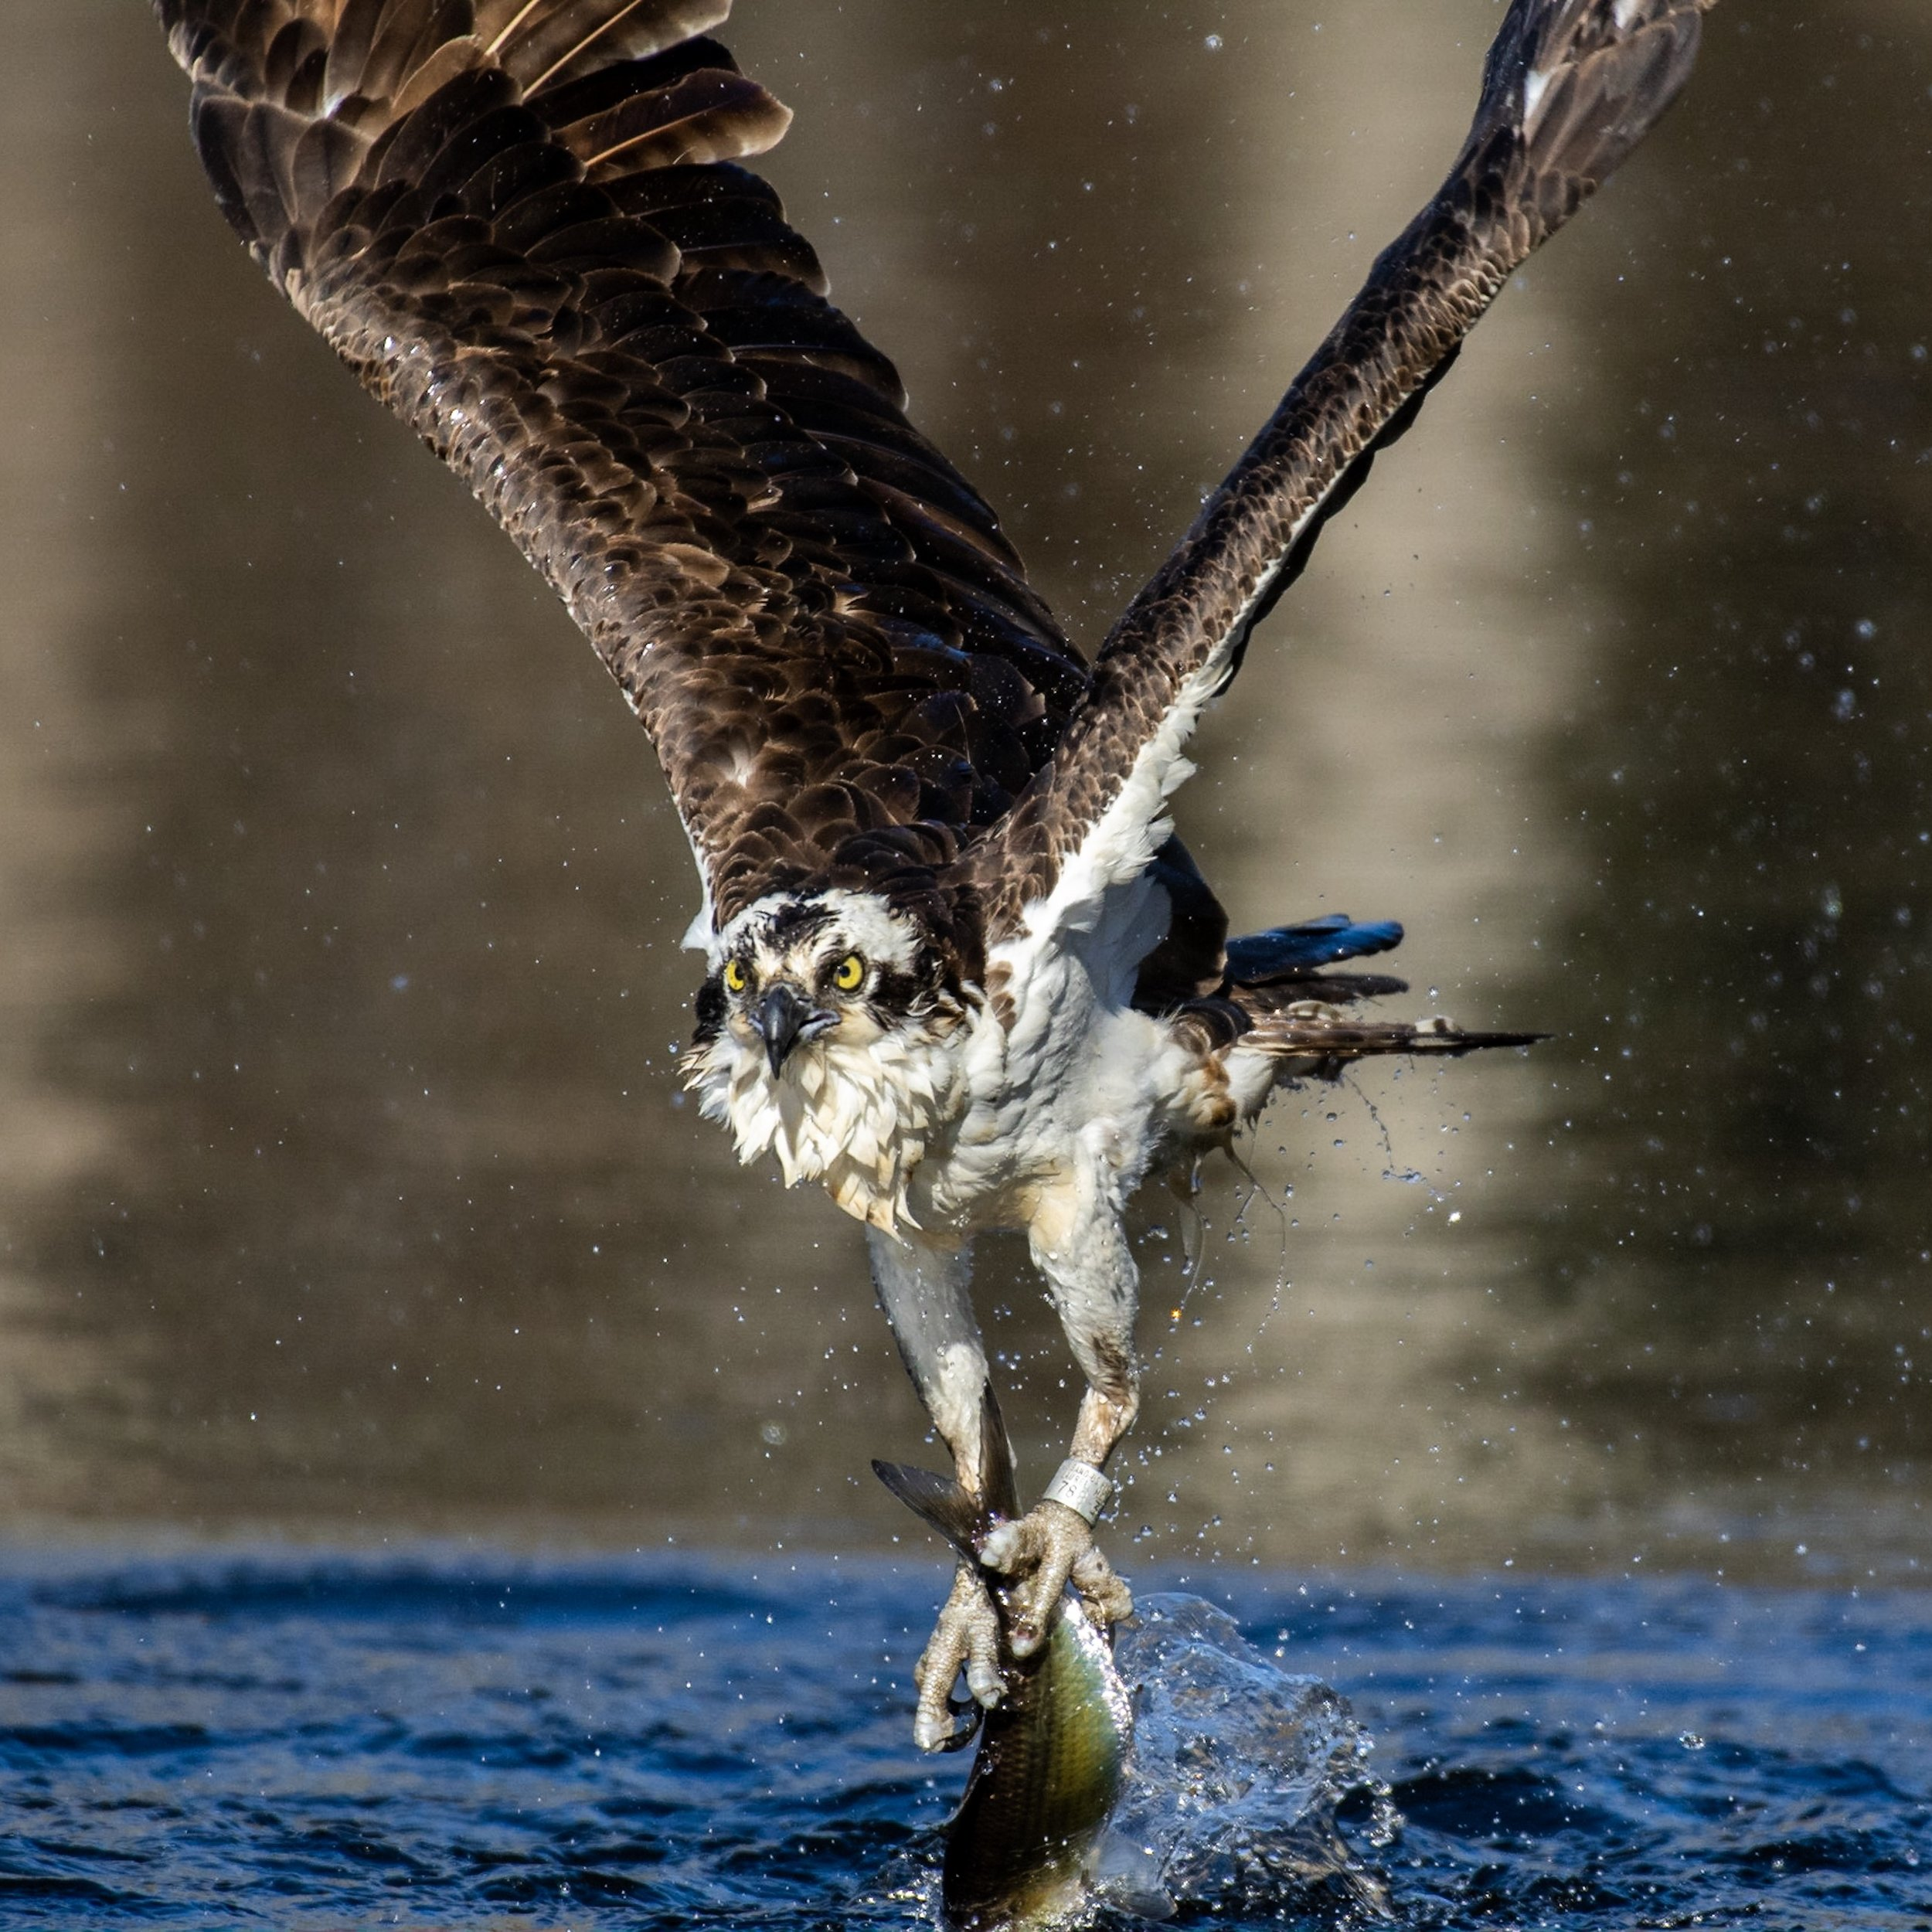 Osprey climbing out of the water with a fish.